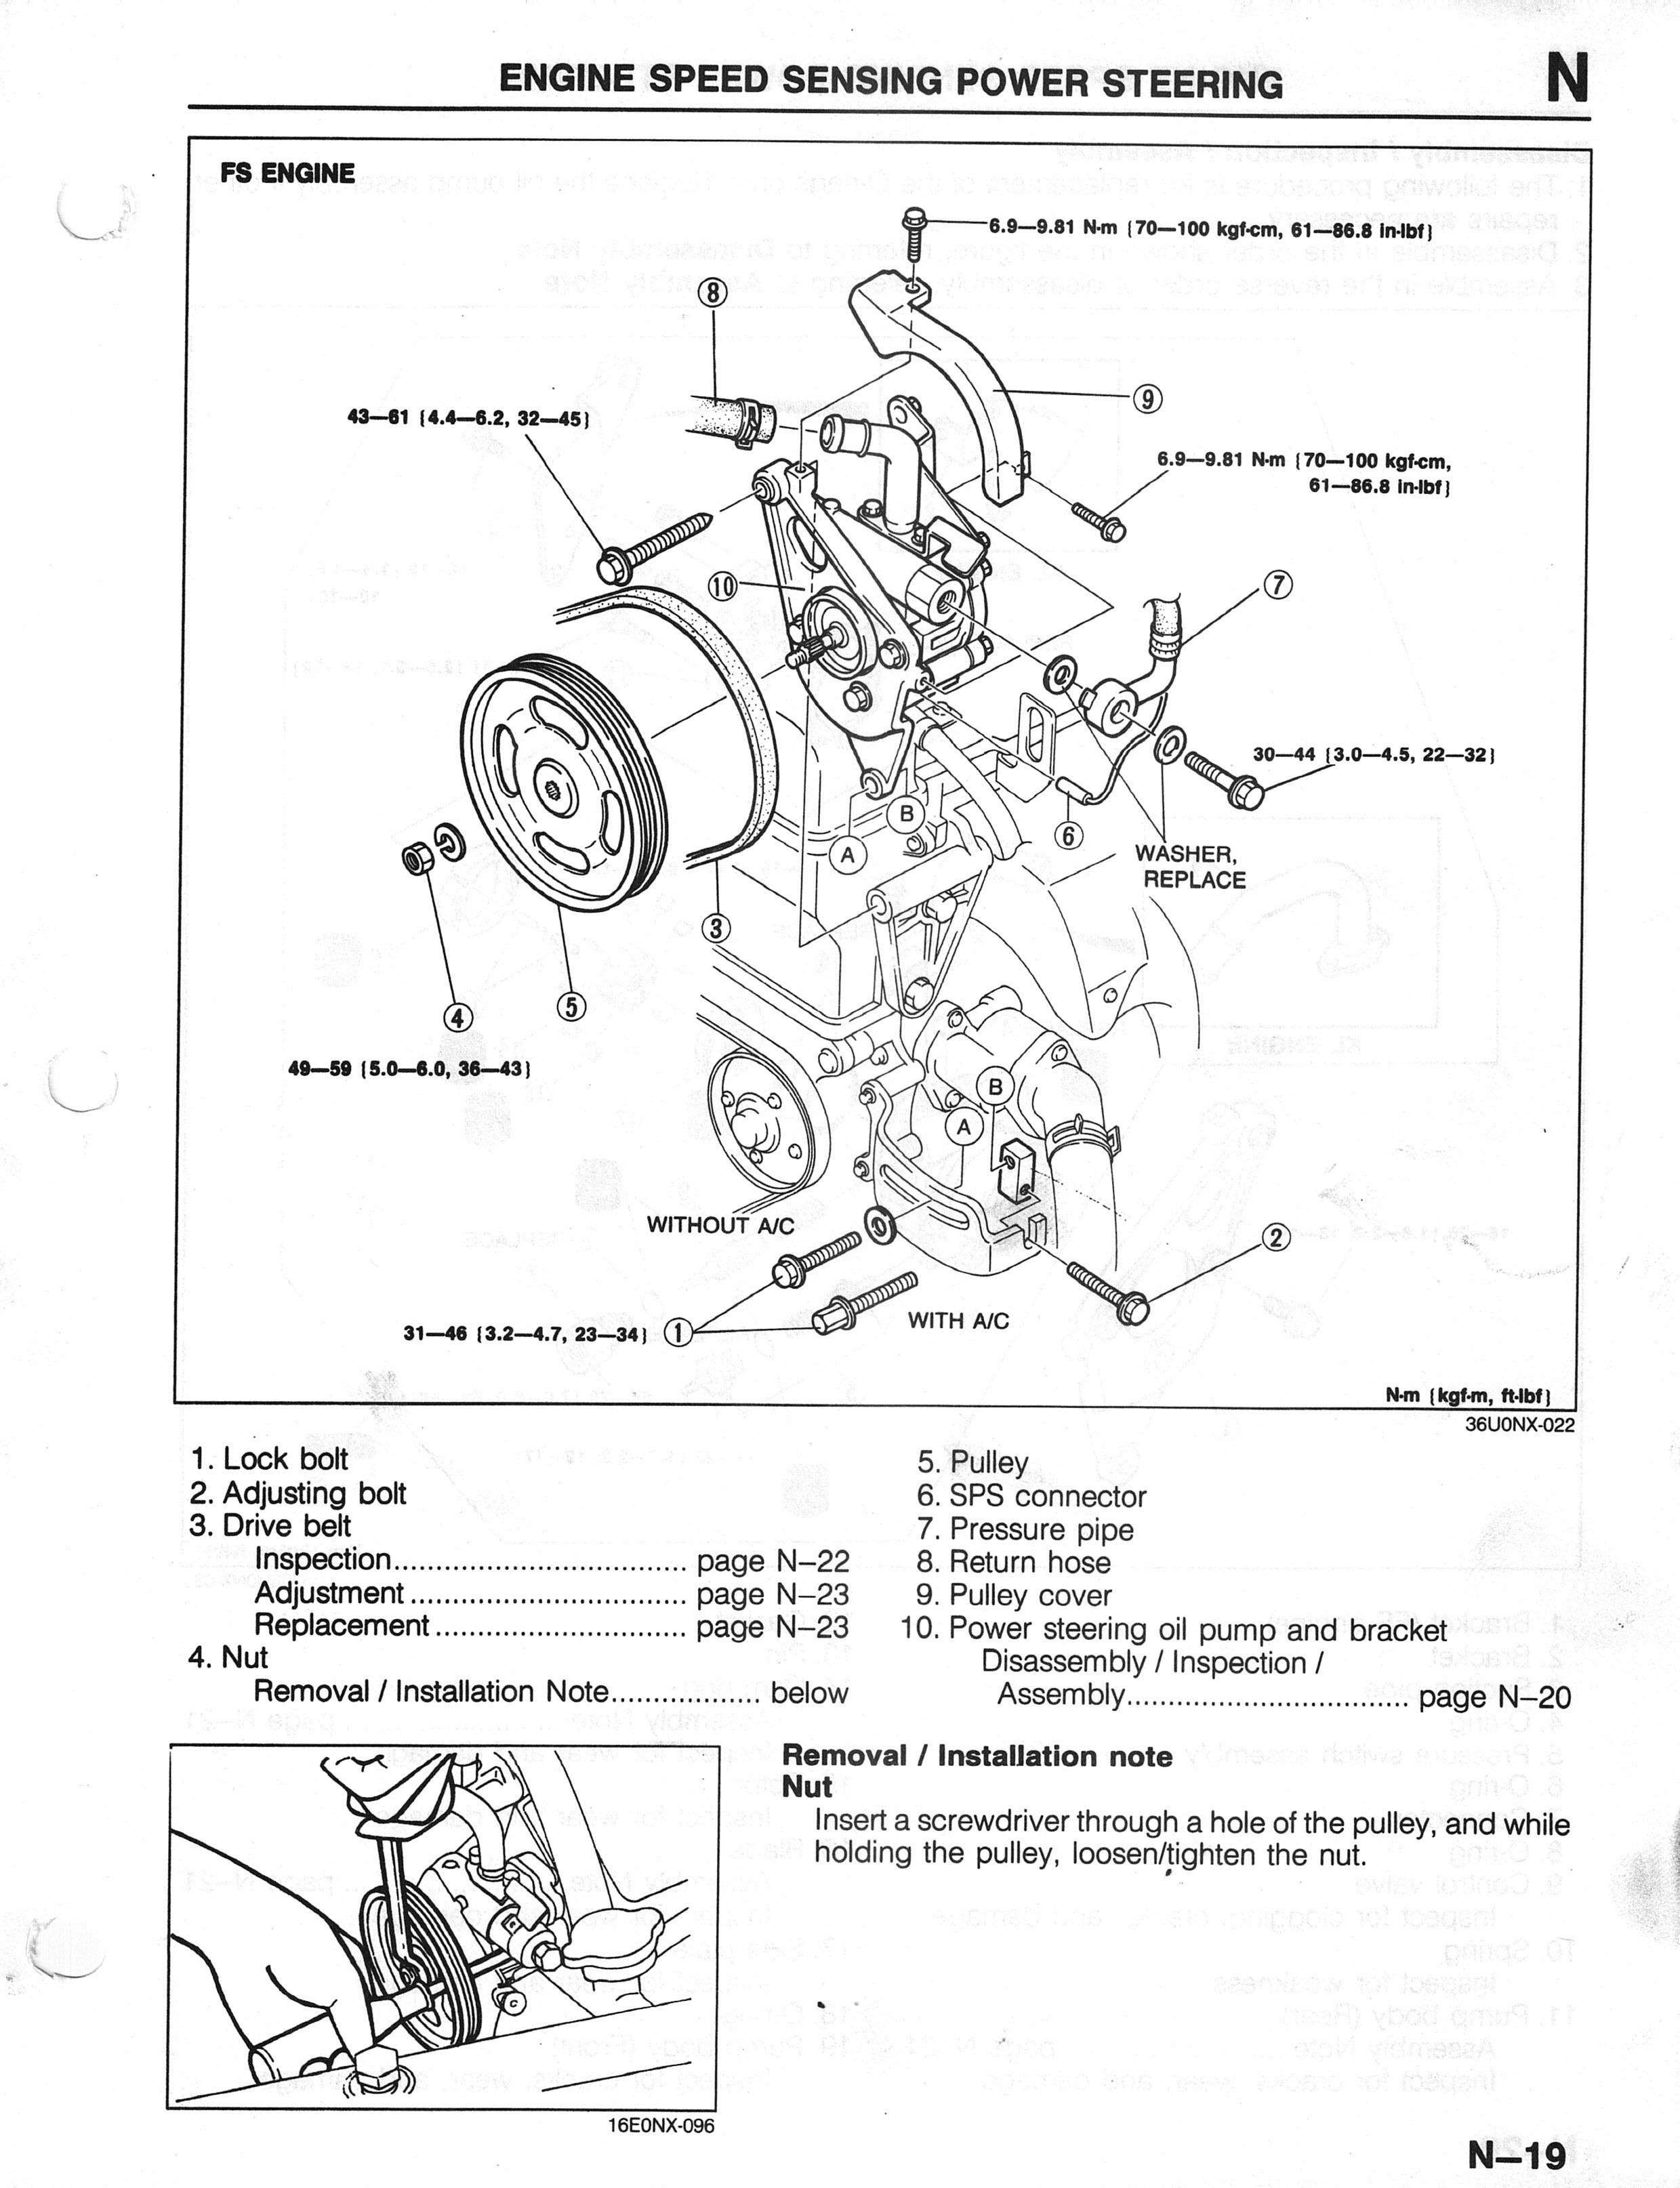 Mazda Engine Parts Diagram 2001 626 Wiring Guide For Dummies Library Rh 77 Skriptoase De 1995 Toyota Tacoma